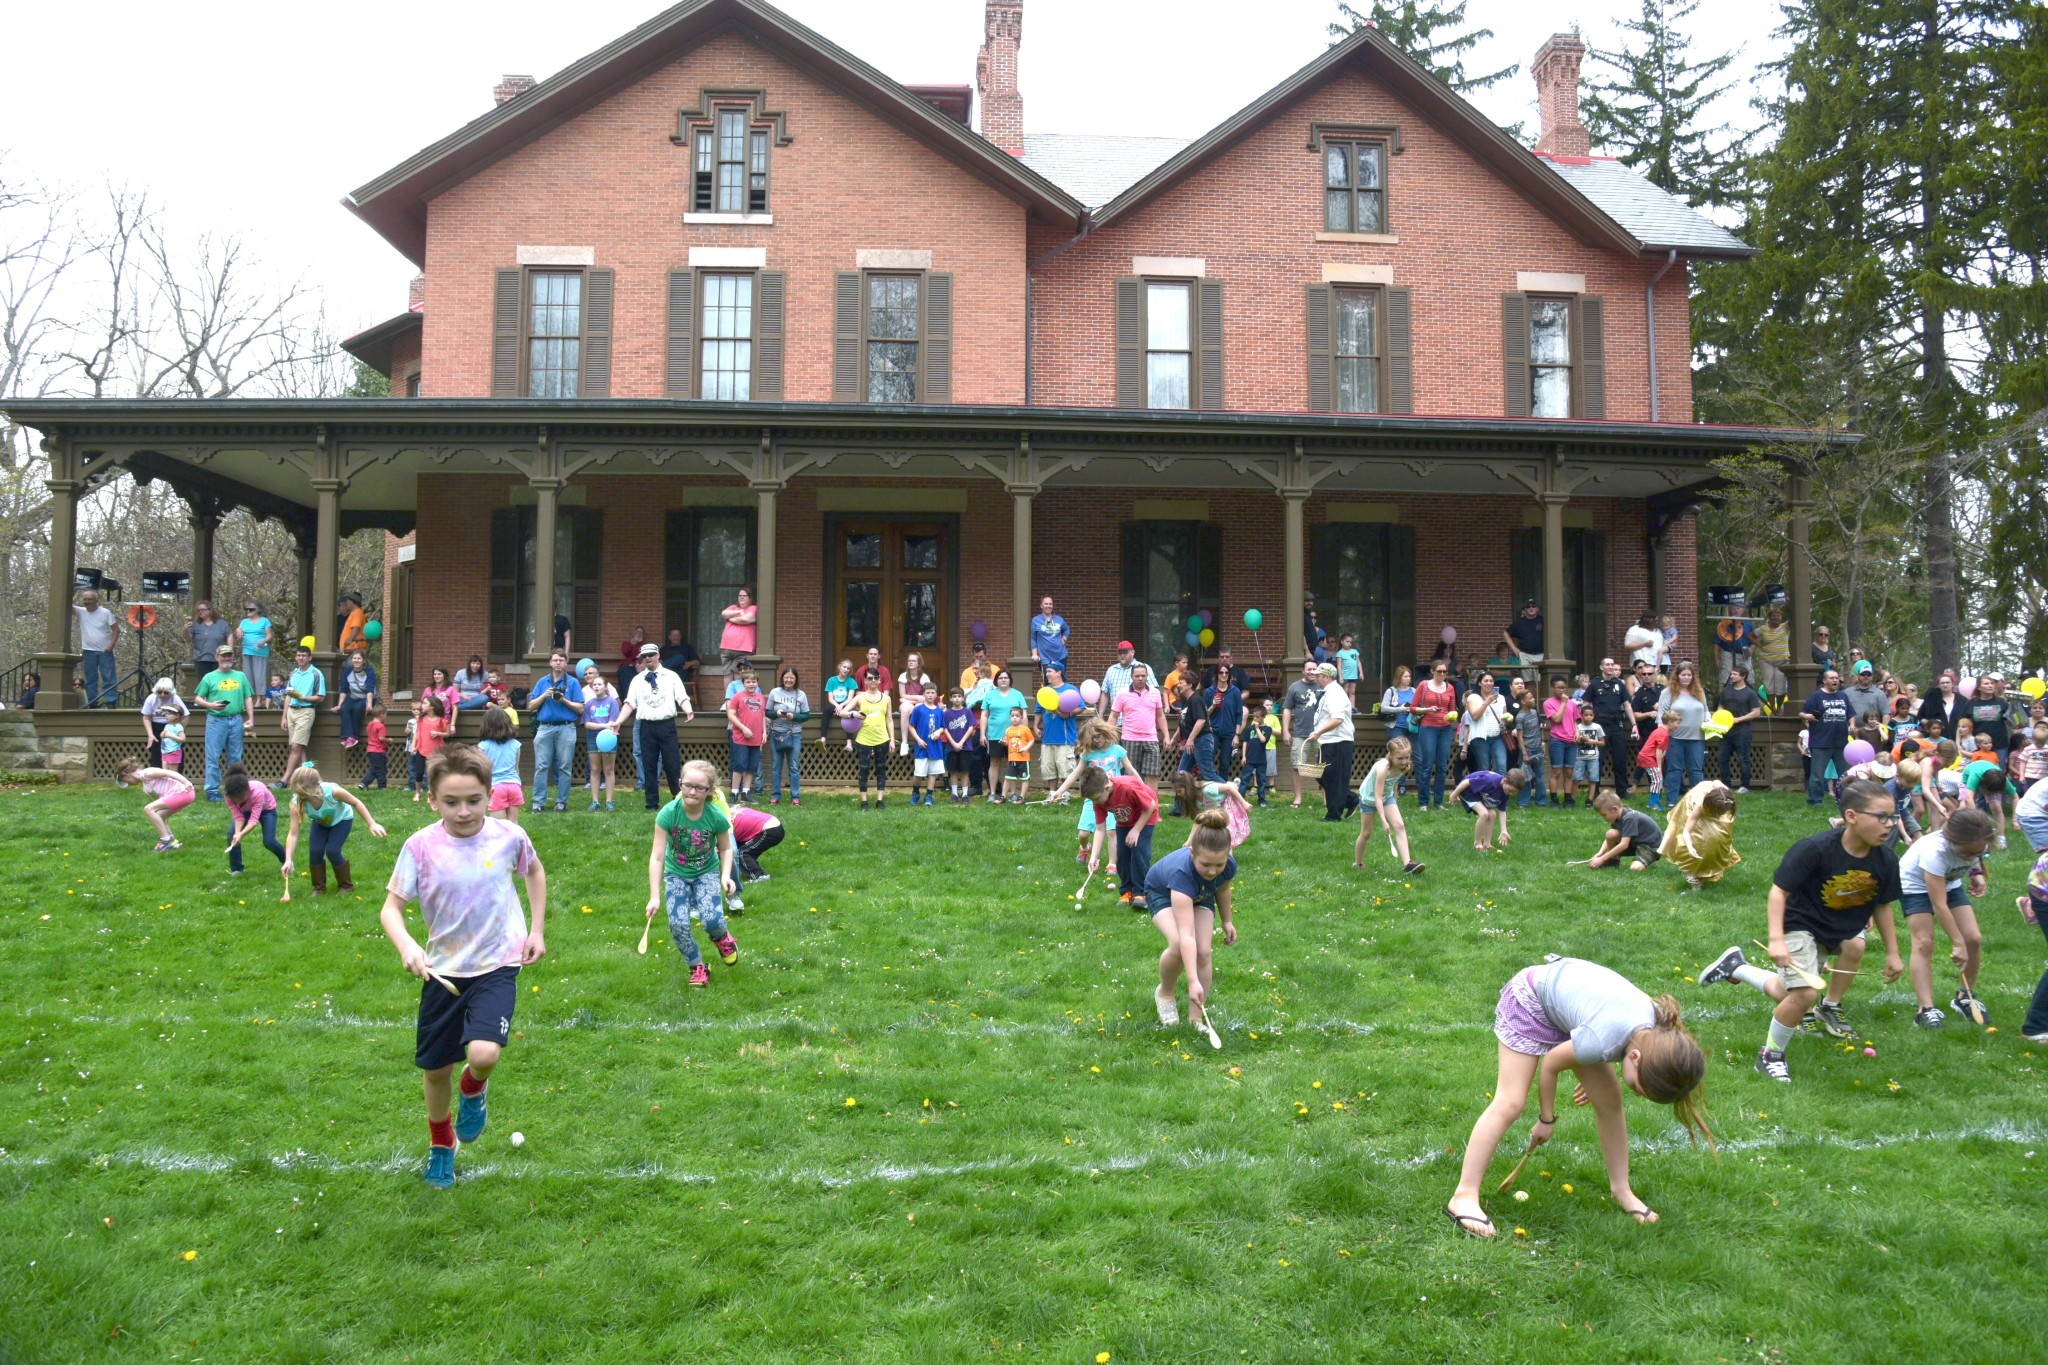 Kids enjoy the annual Easter Egg Roll on the lawn of the historic Hayes Home in this 2017 photo. This year, the egg roll will take place with reduced crowds and numerous safety protocols. (Submitted photo)